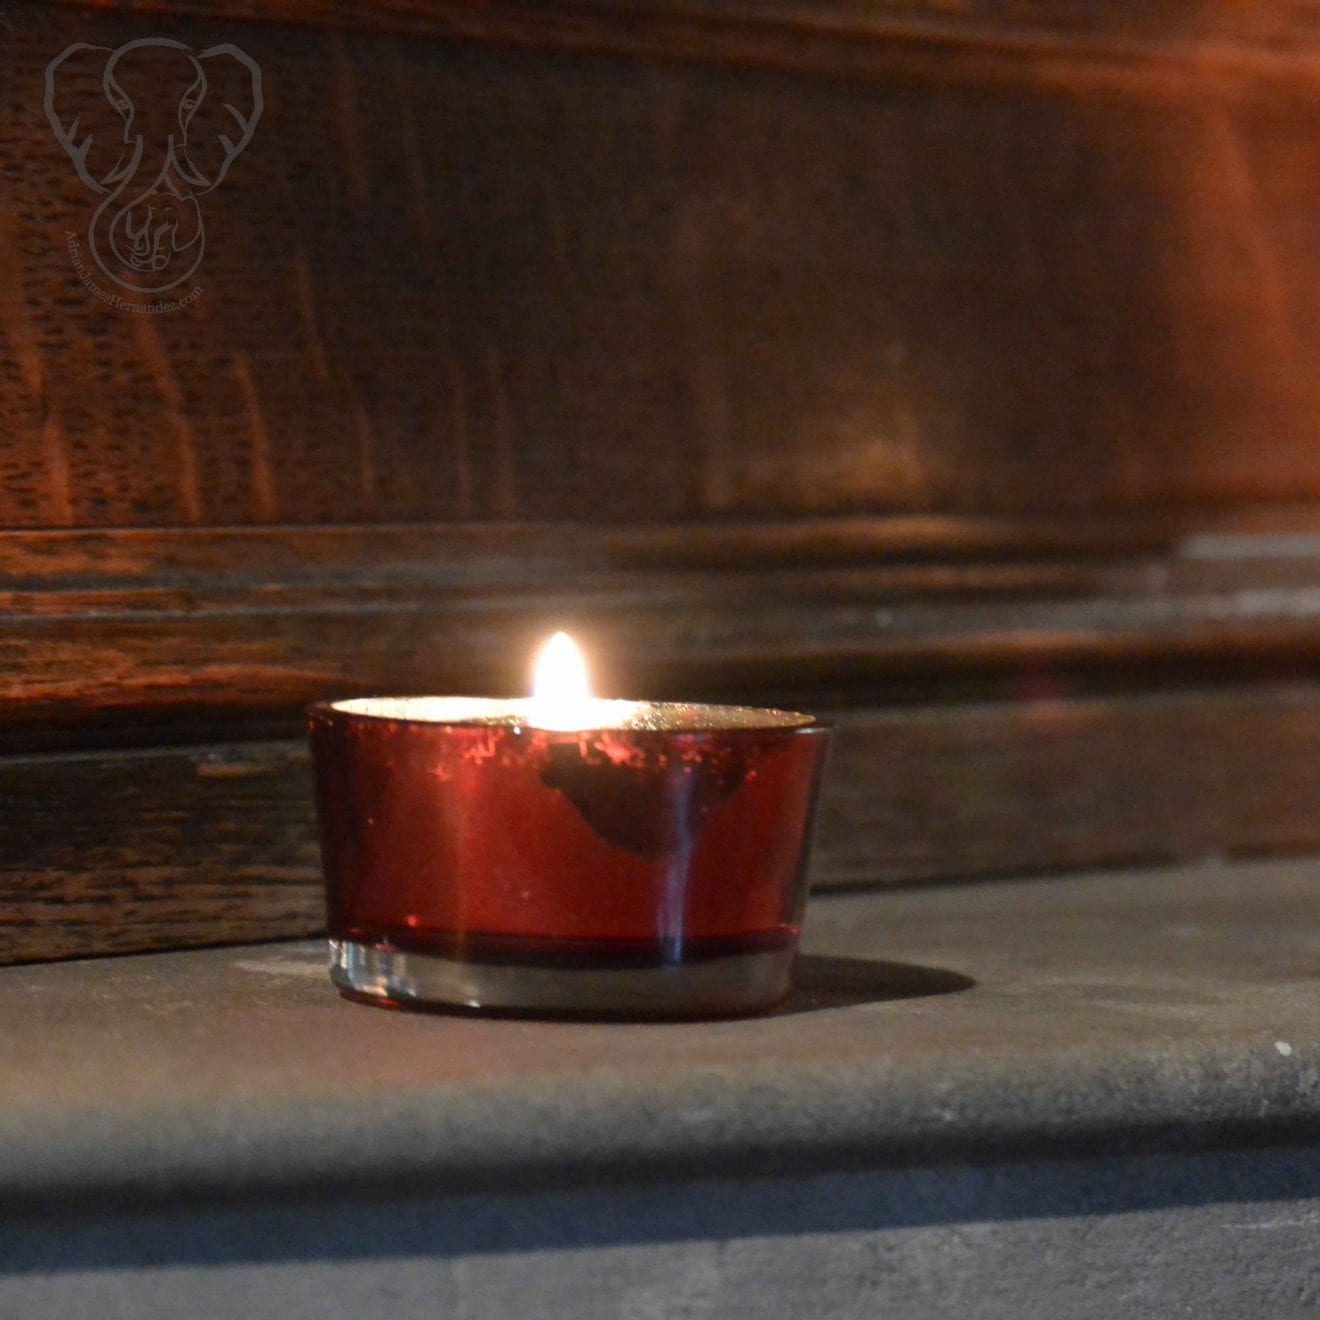 Burning candle at St Katharines's Parmoor, Buckinghamshire, England (Miranda Hernandez)